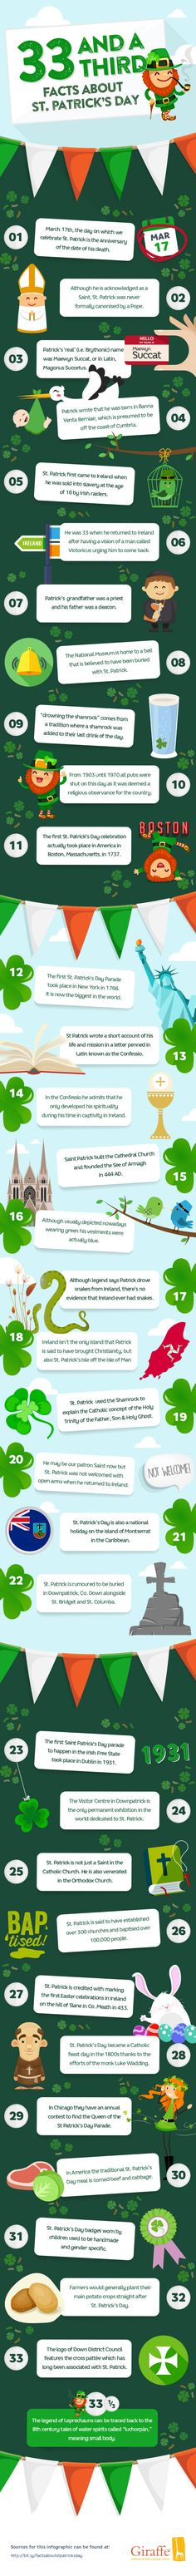 Who was Maewyn Succat, and how did he go on to become Ireland's globally-celebrated patron Saint Patrick? Here is an educational infographic that contains 33 (and a third!) facts about St. Patrick's Day, from Patrick's own childhood on the western coast of Britain, to how both sides of the Atlantic have developed traditions to celebrate the national …